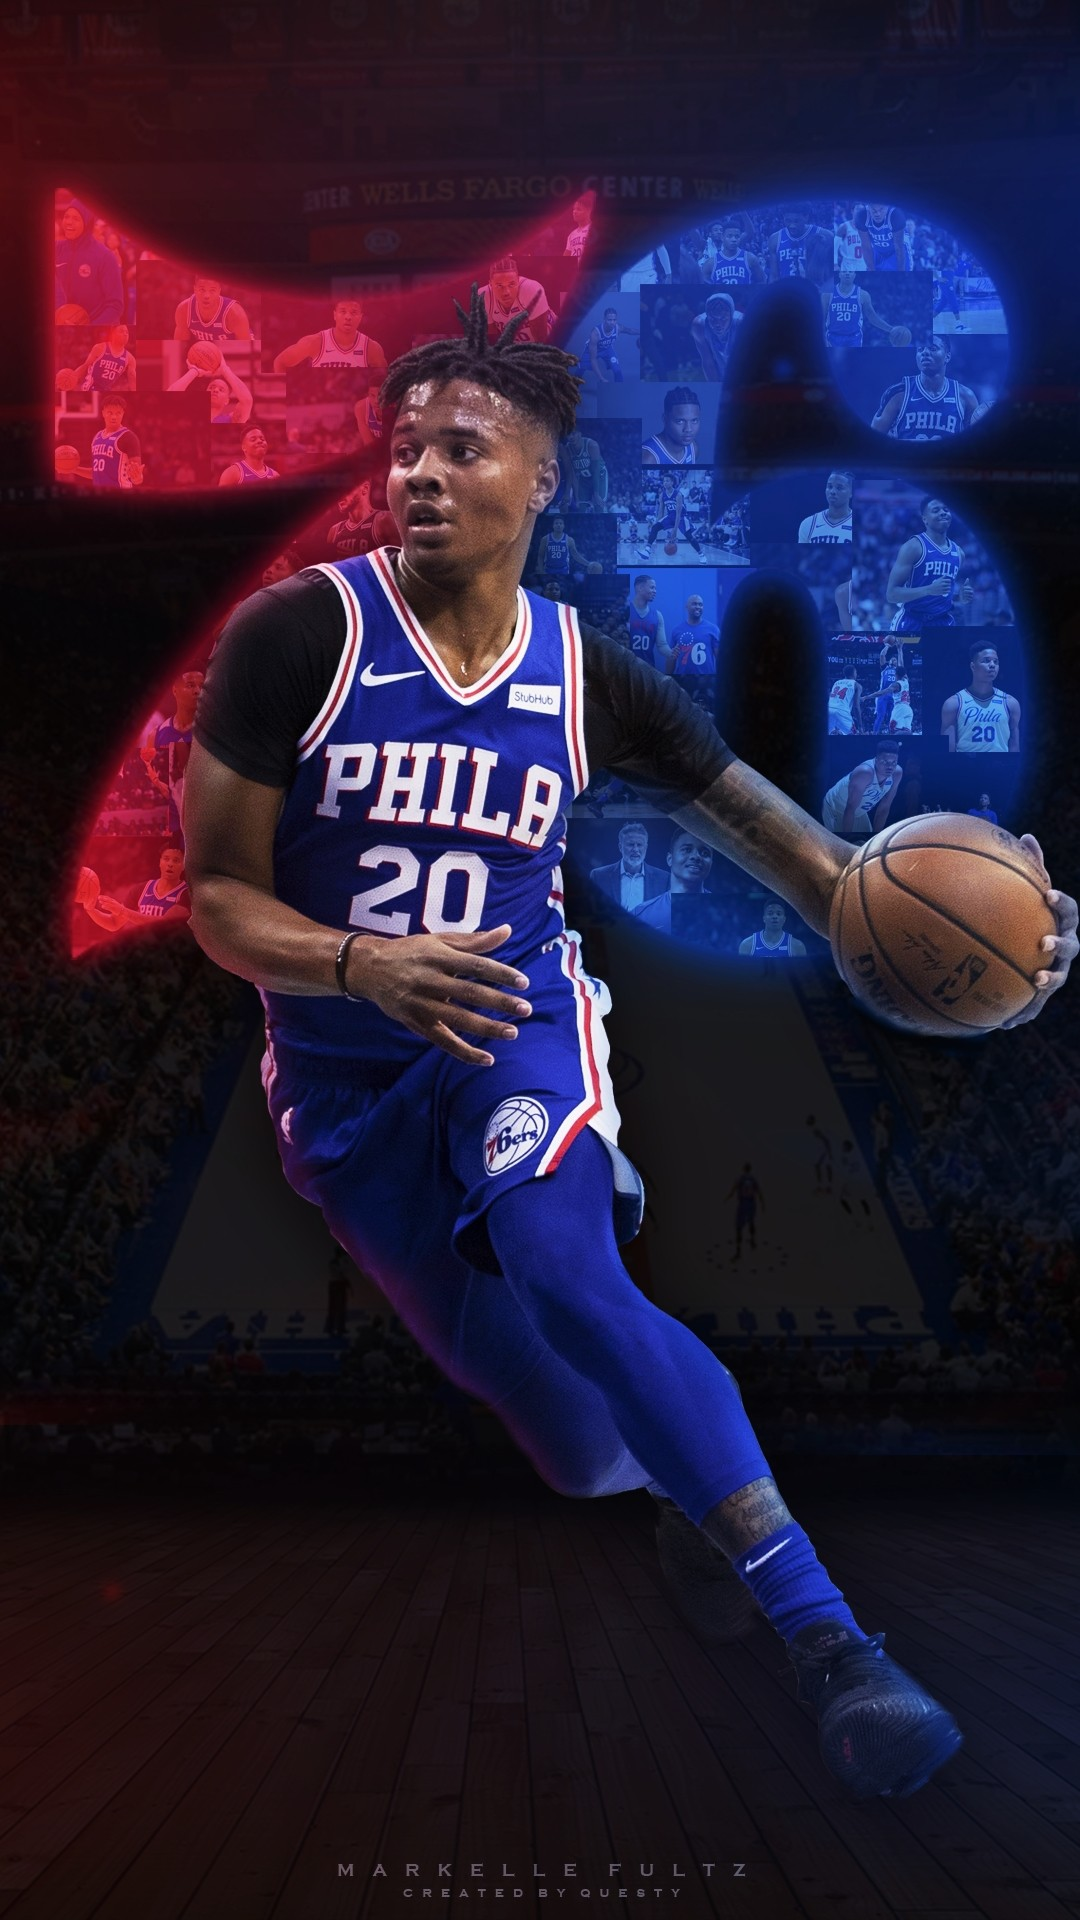 Sixers hd wallpaper for iphone